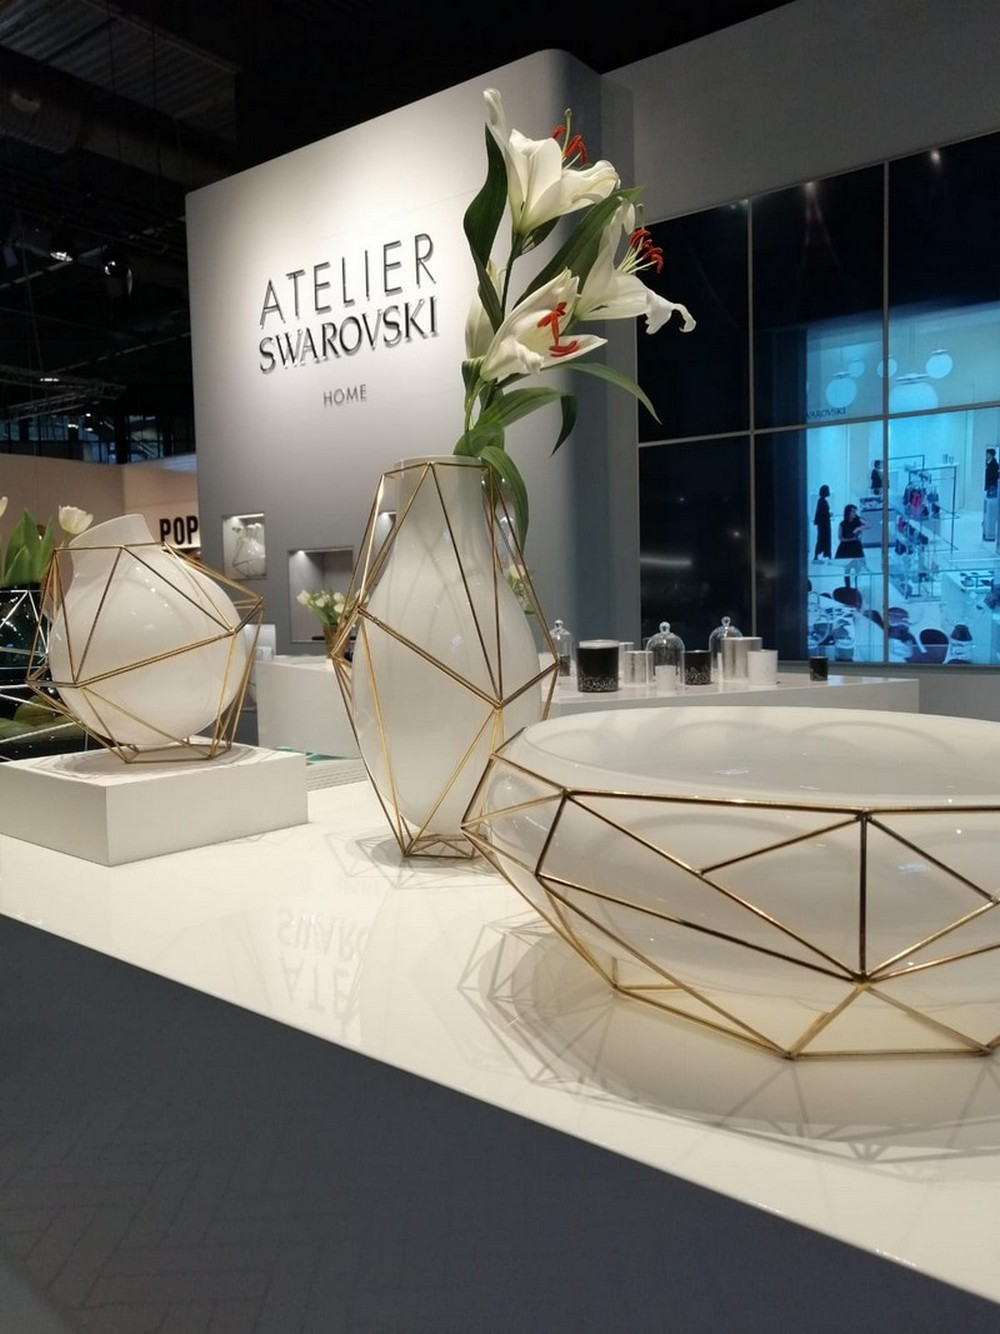 Top Luxury Design Brands To Vist During Salone Del Mobile Milano top luxury design brands Top Luxury Design Brands To Vist During Salone Del Mobile Milano Top Luxury Design Brands To Vist During Salone Del Mobile Milano 2